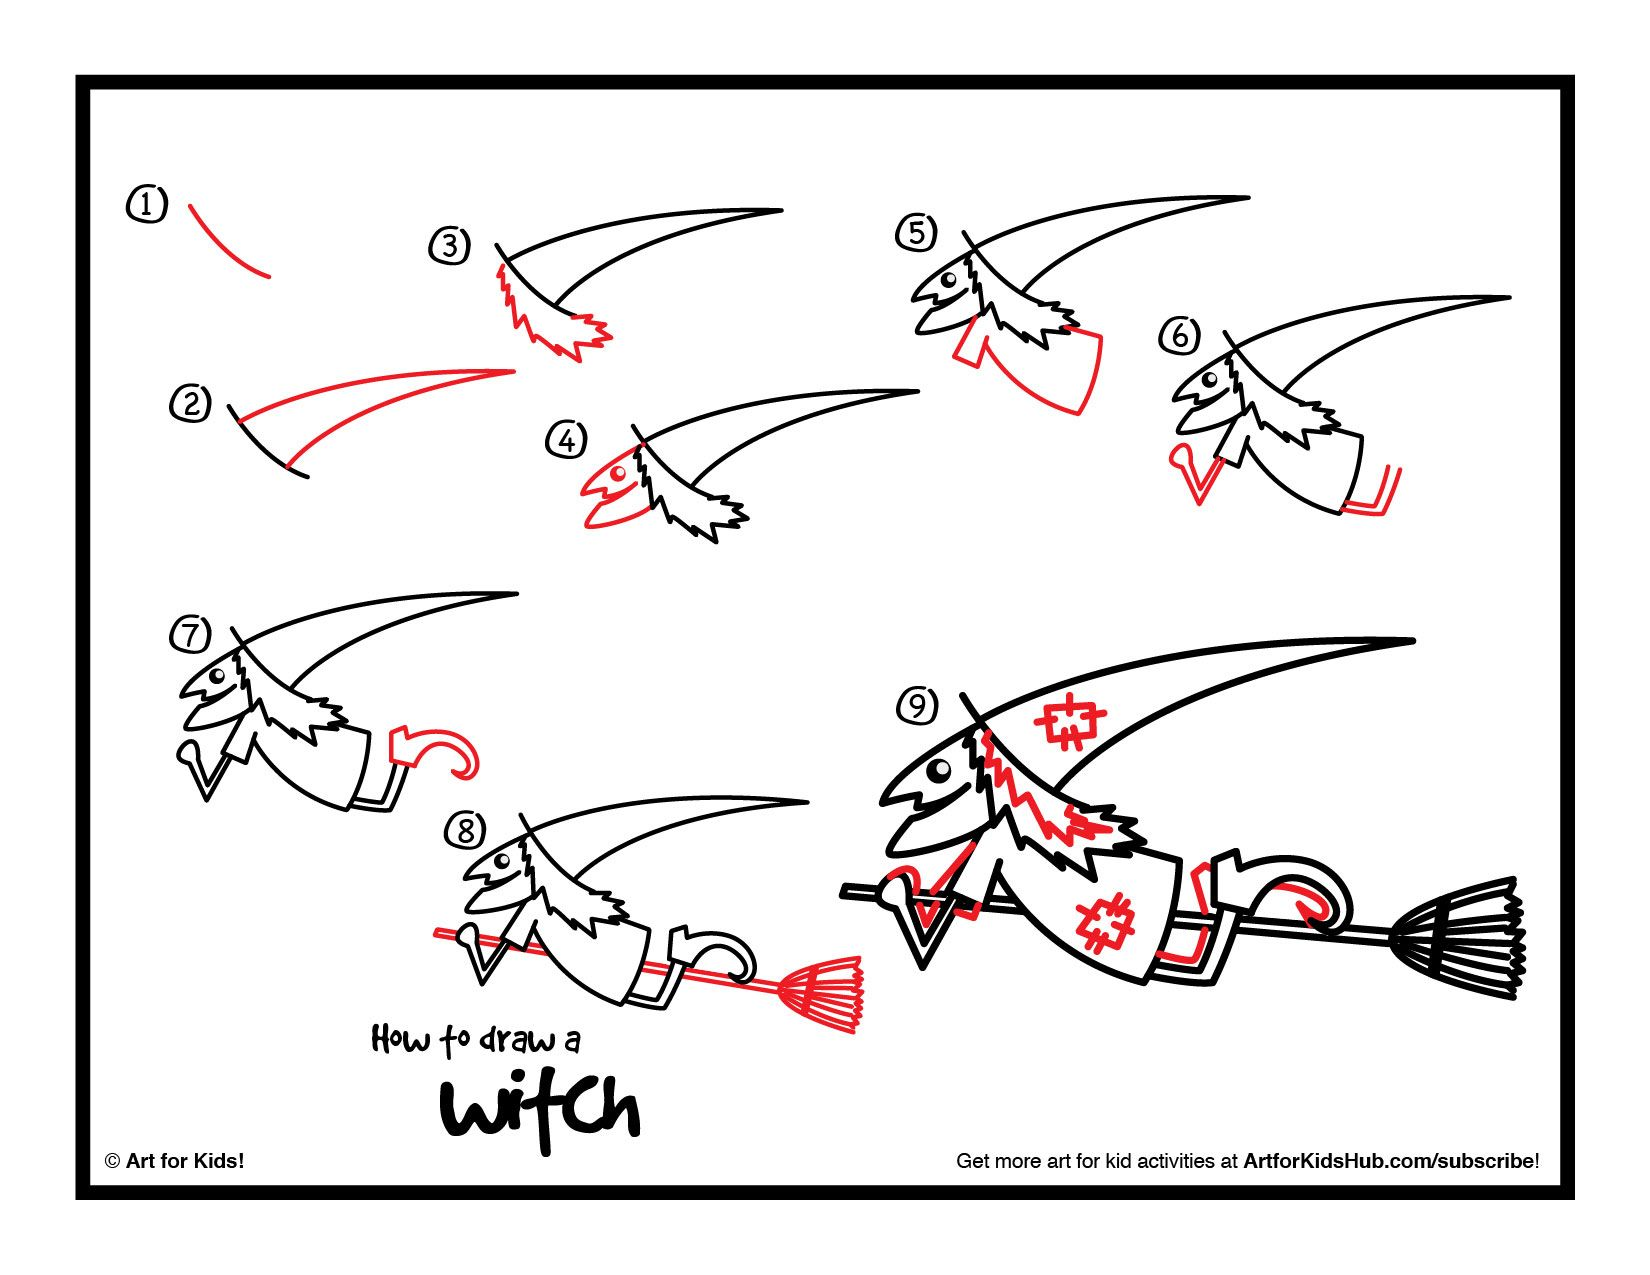 How To Draw A Witch Cutout